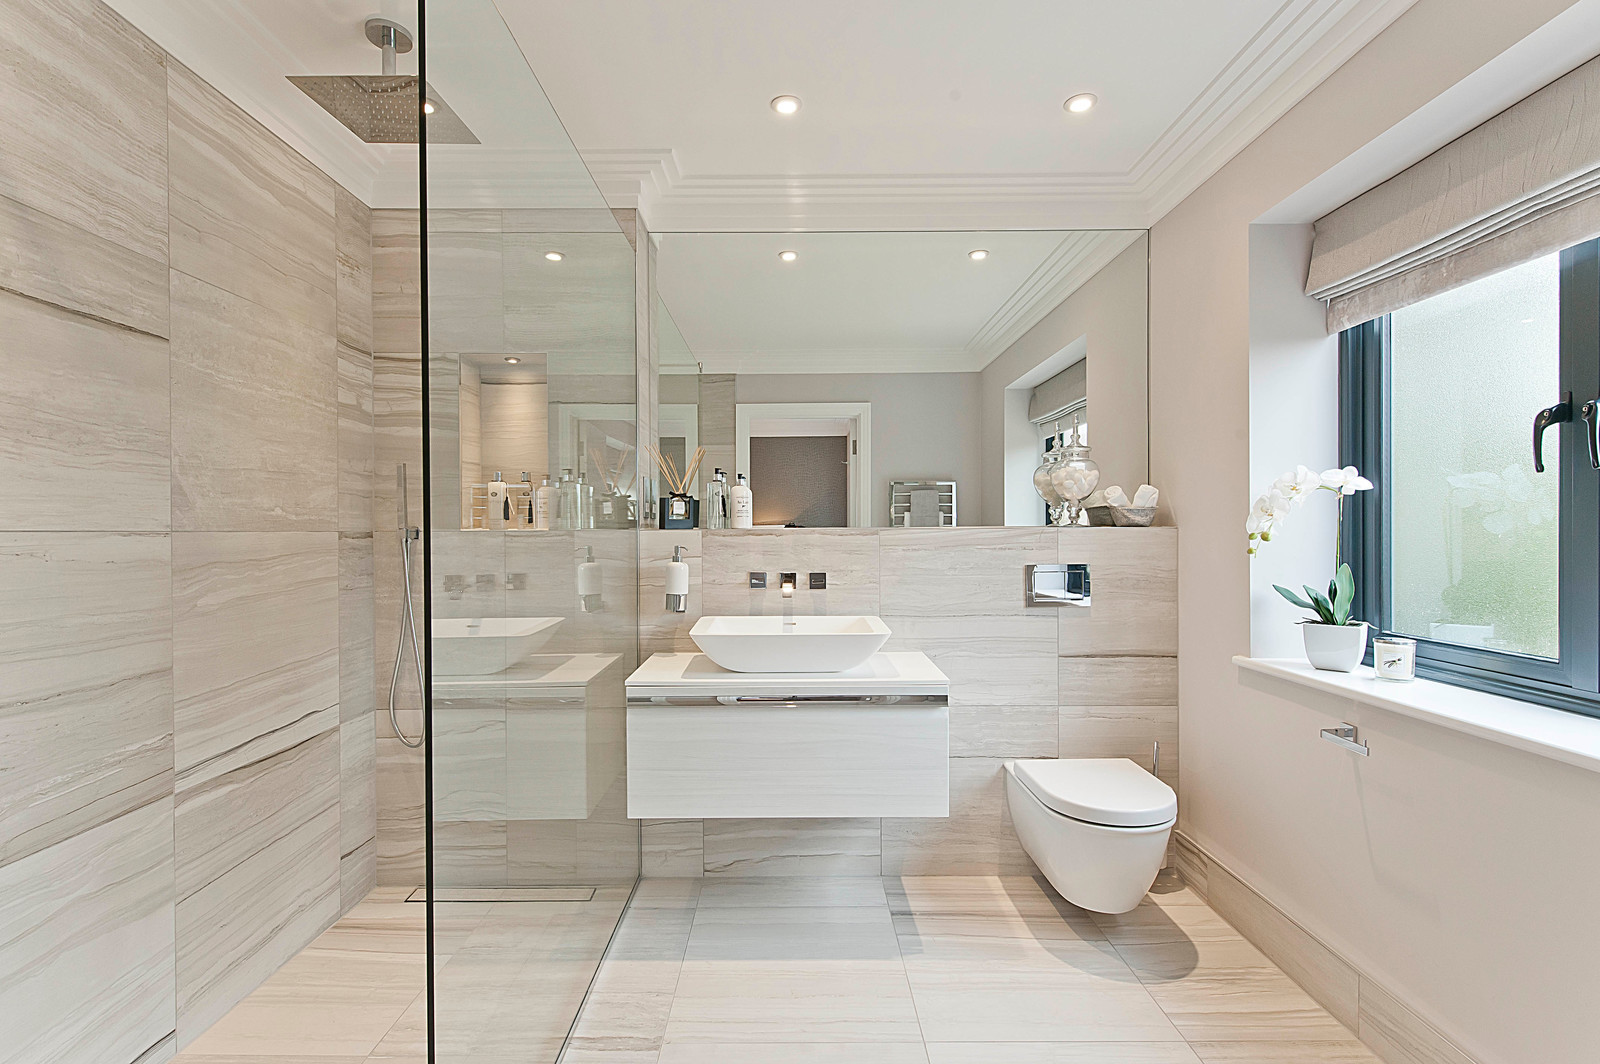 Bathroom fitters in birmingham bathroom fitters in for Bathroom design birmingham